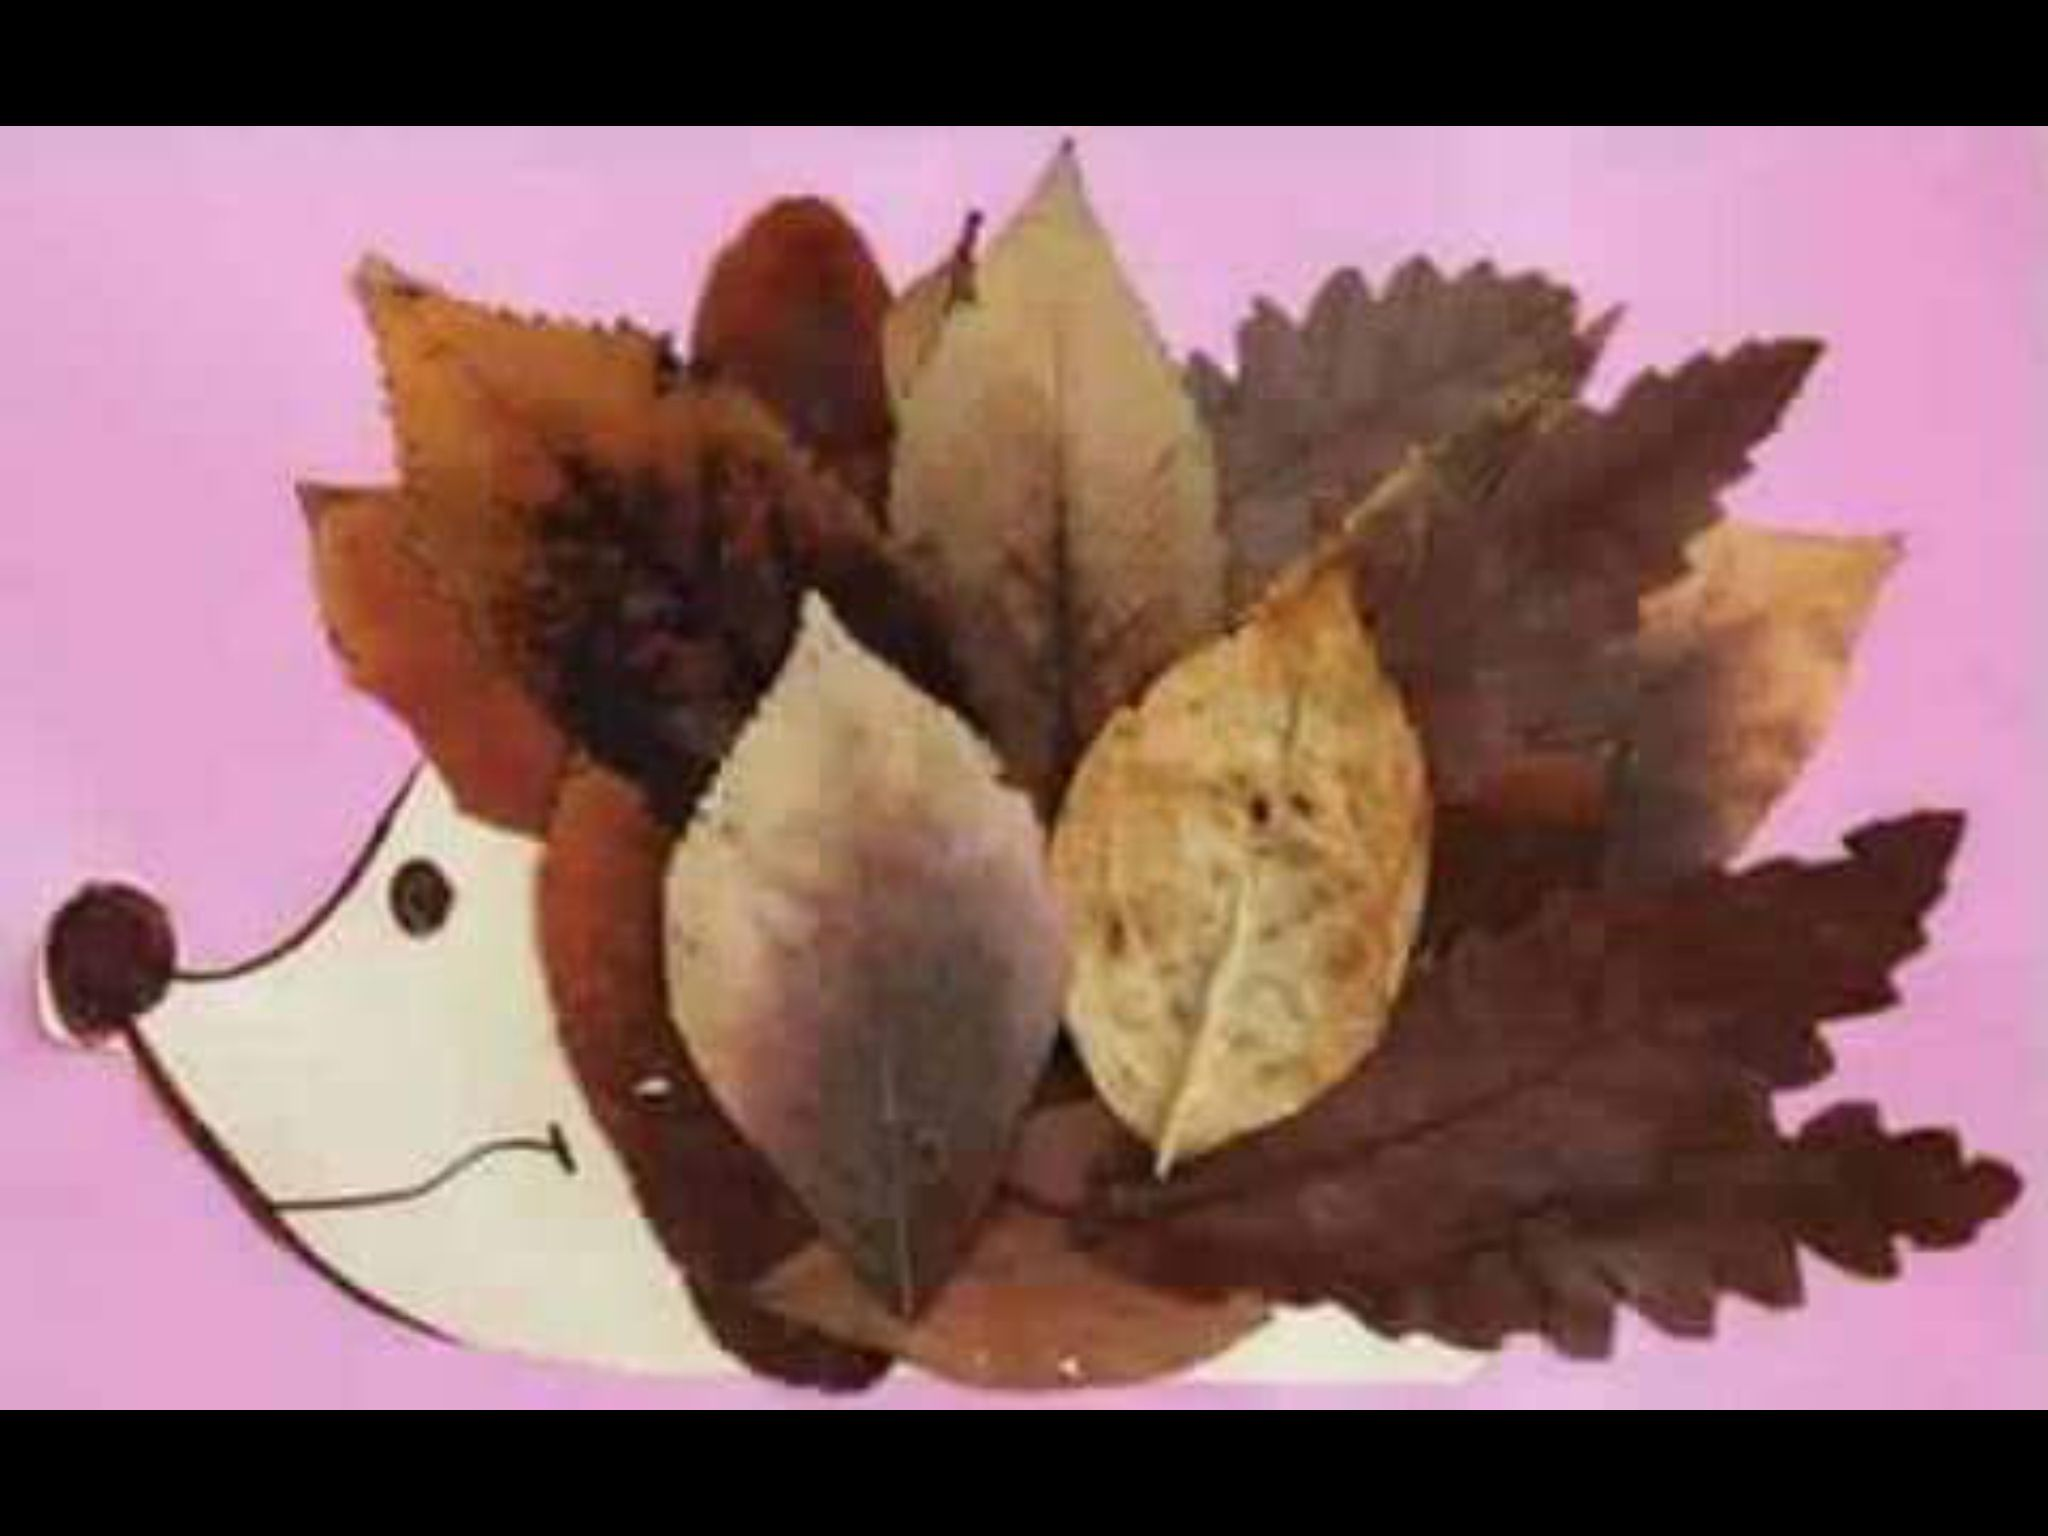 Leaves on pinterest autumn leaves fall leaves crafts and fall - Explore Fall Leaves Crafts Autumn Leaves And More